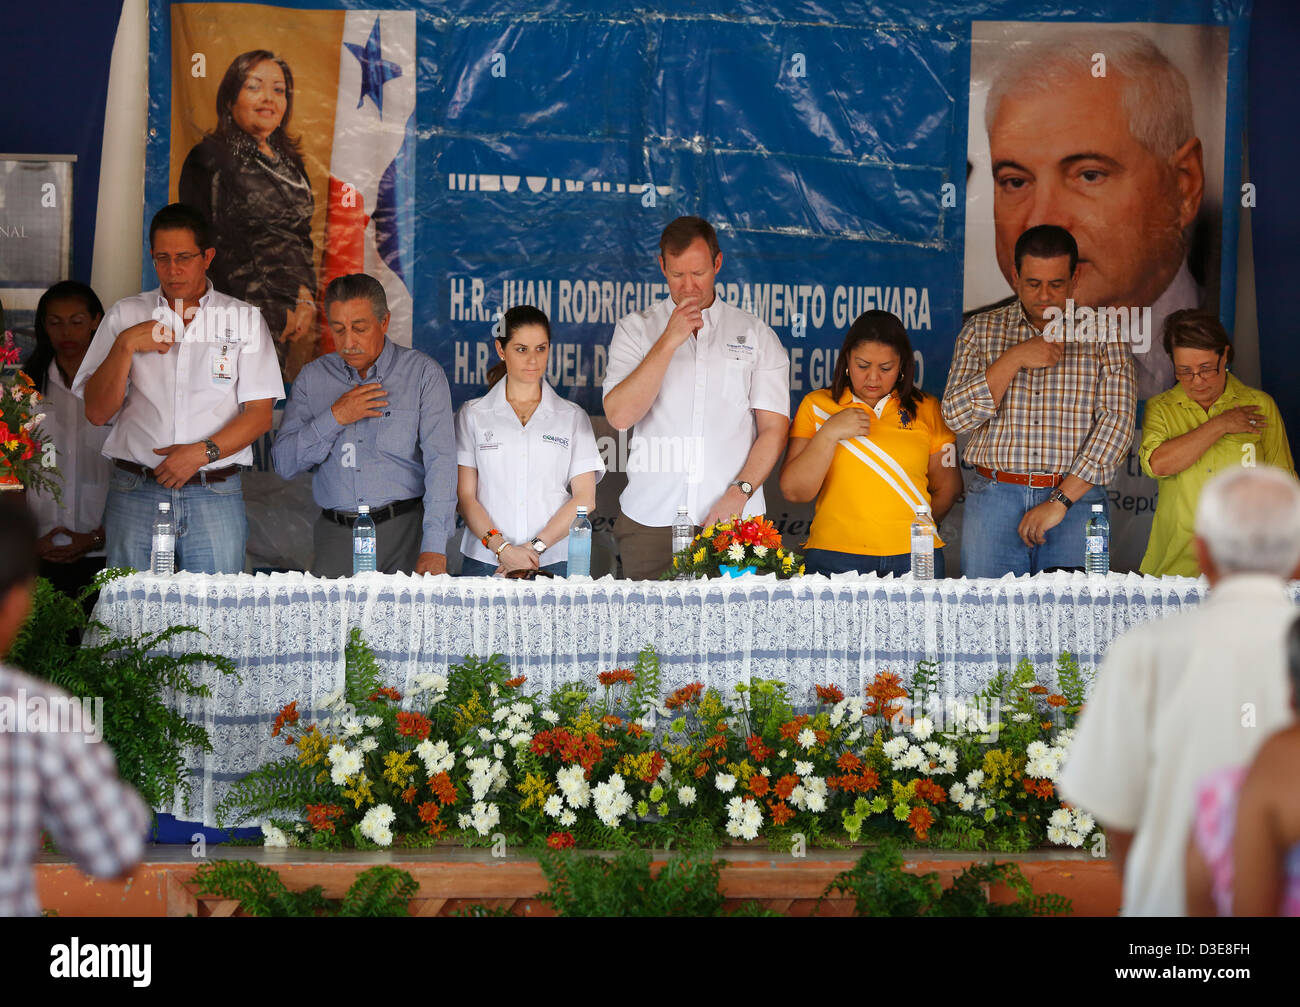 Officials make the sign of the cross during the benediction at a political rally in the town of La Pintada, Panama - Stock Image